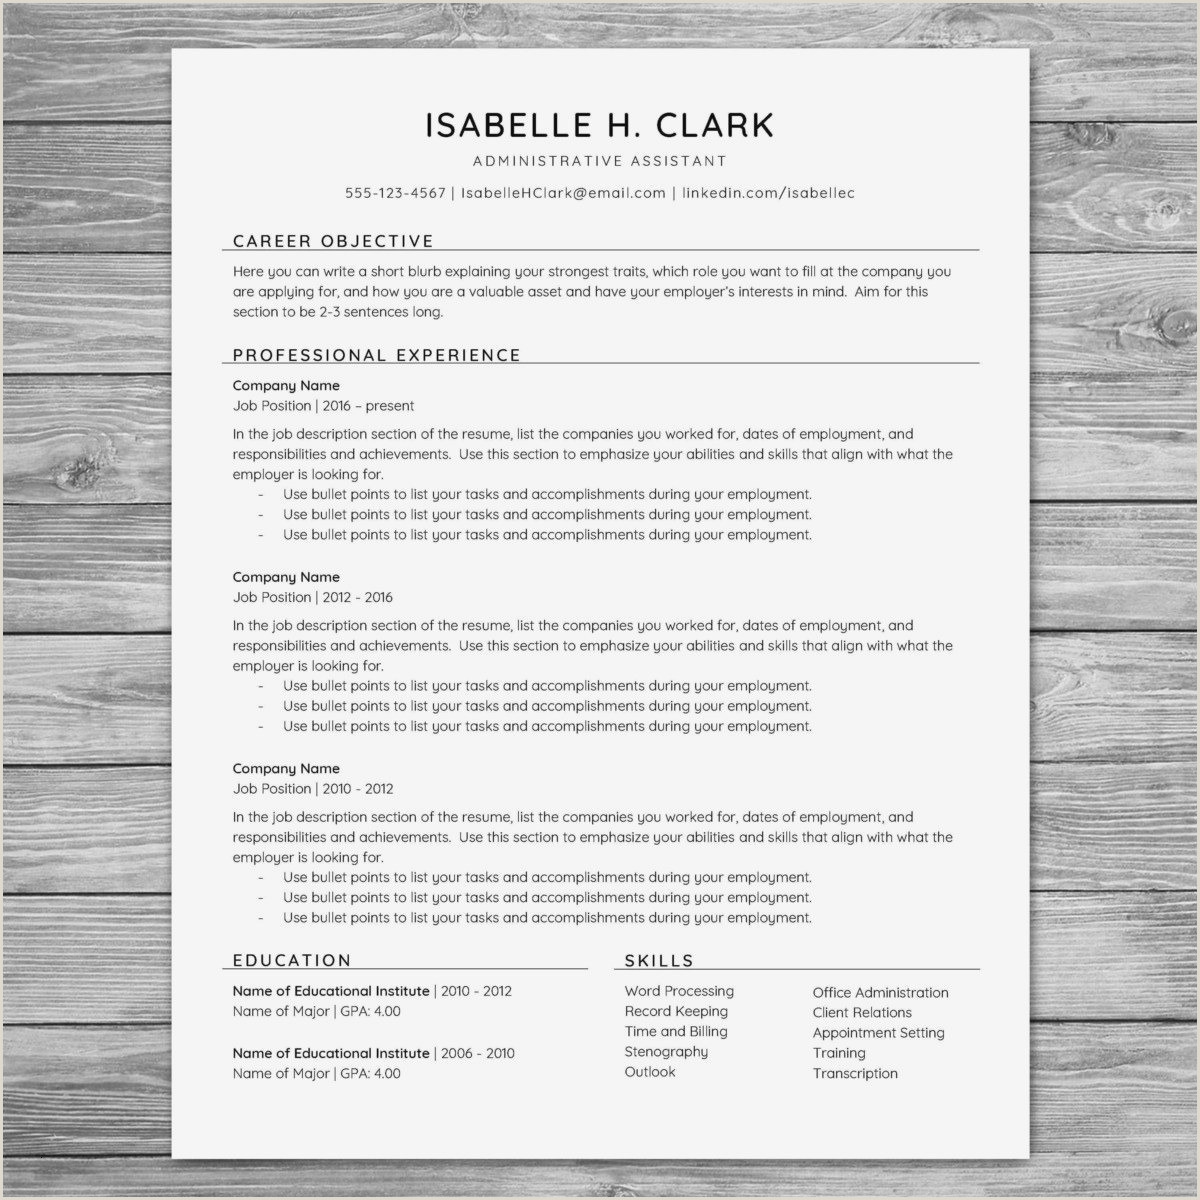 Resume Format Job Vacancy Fice Job Resume Sample Resume For Fice Job Examples